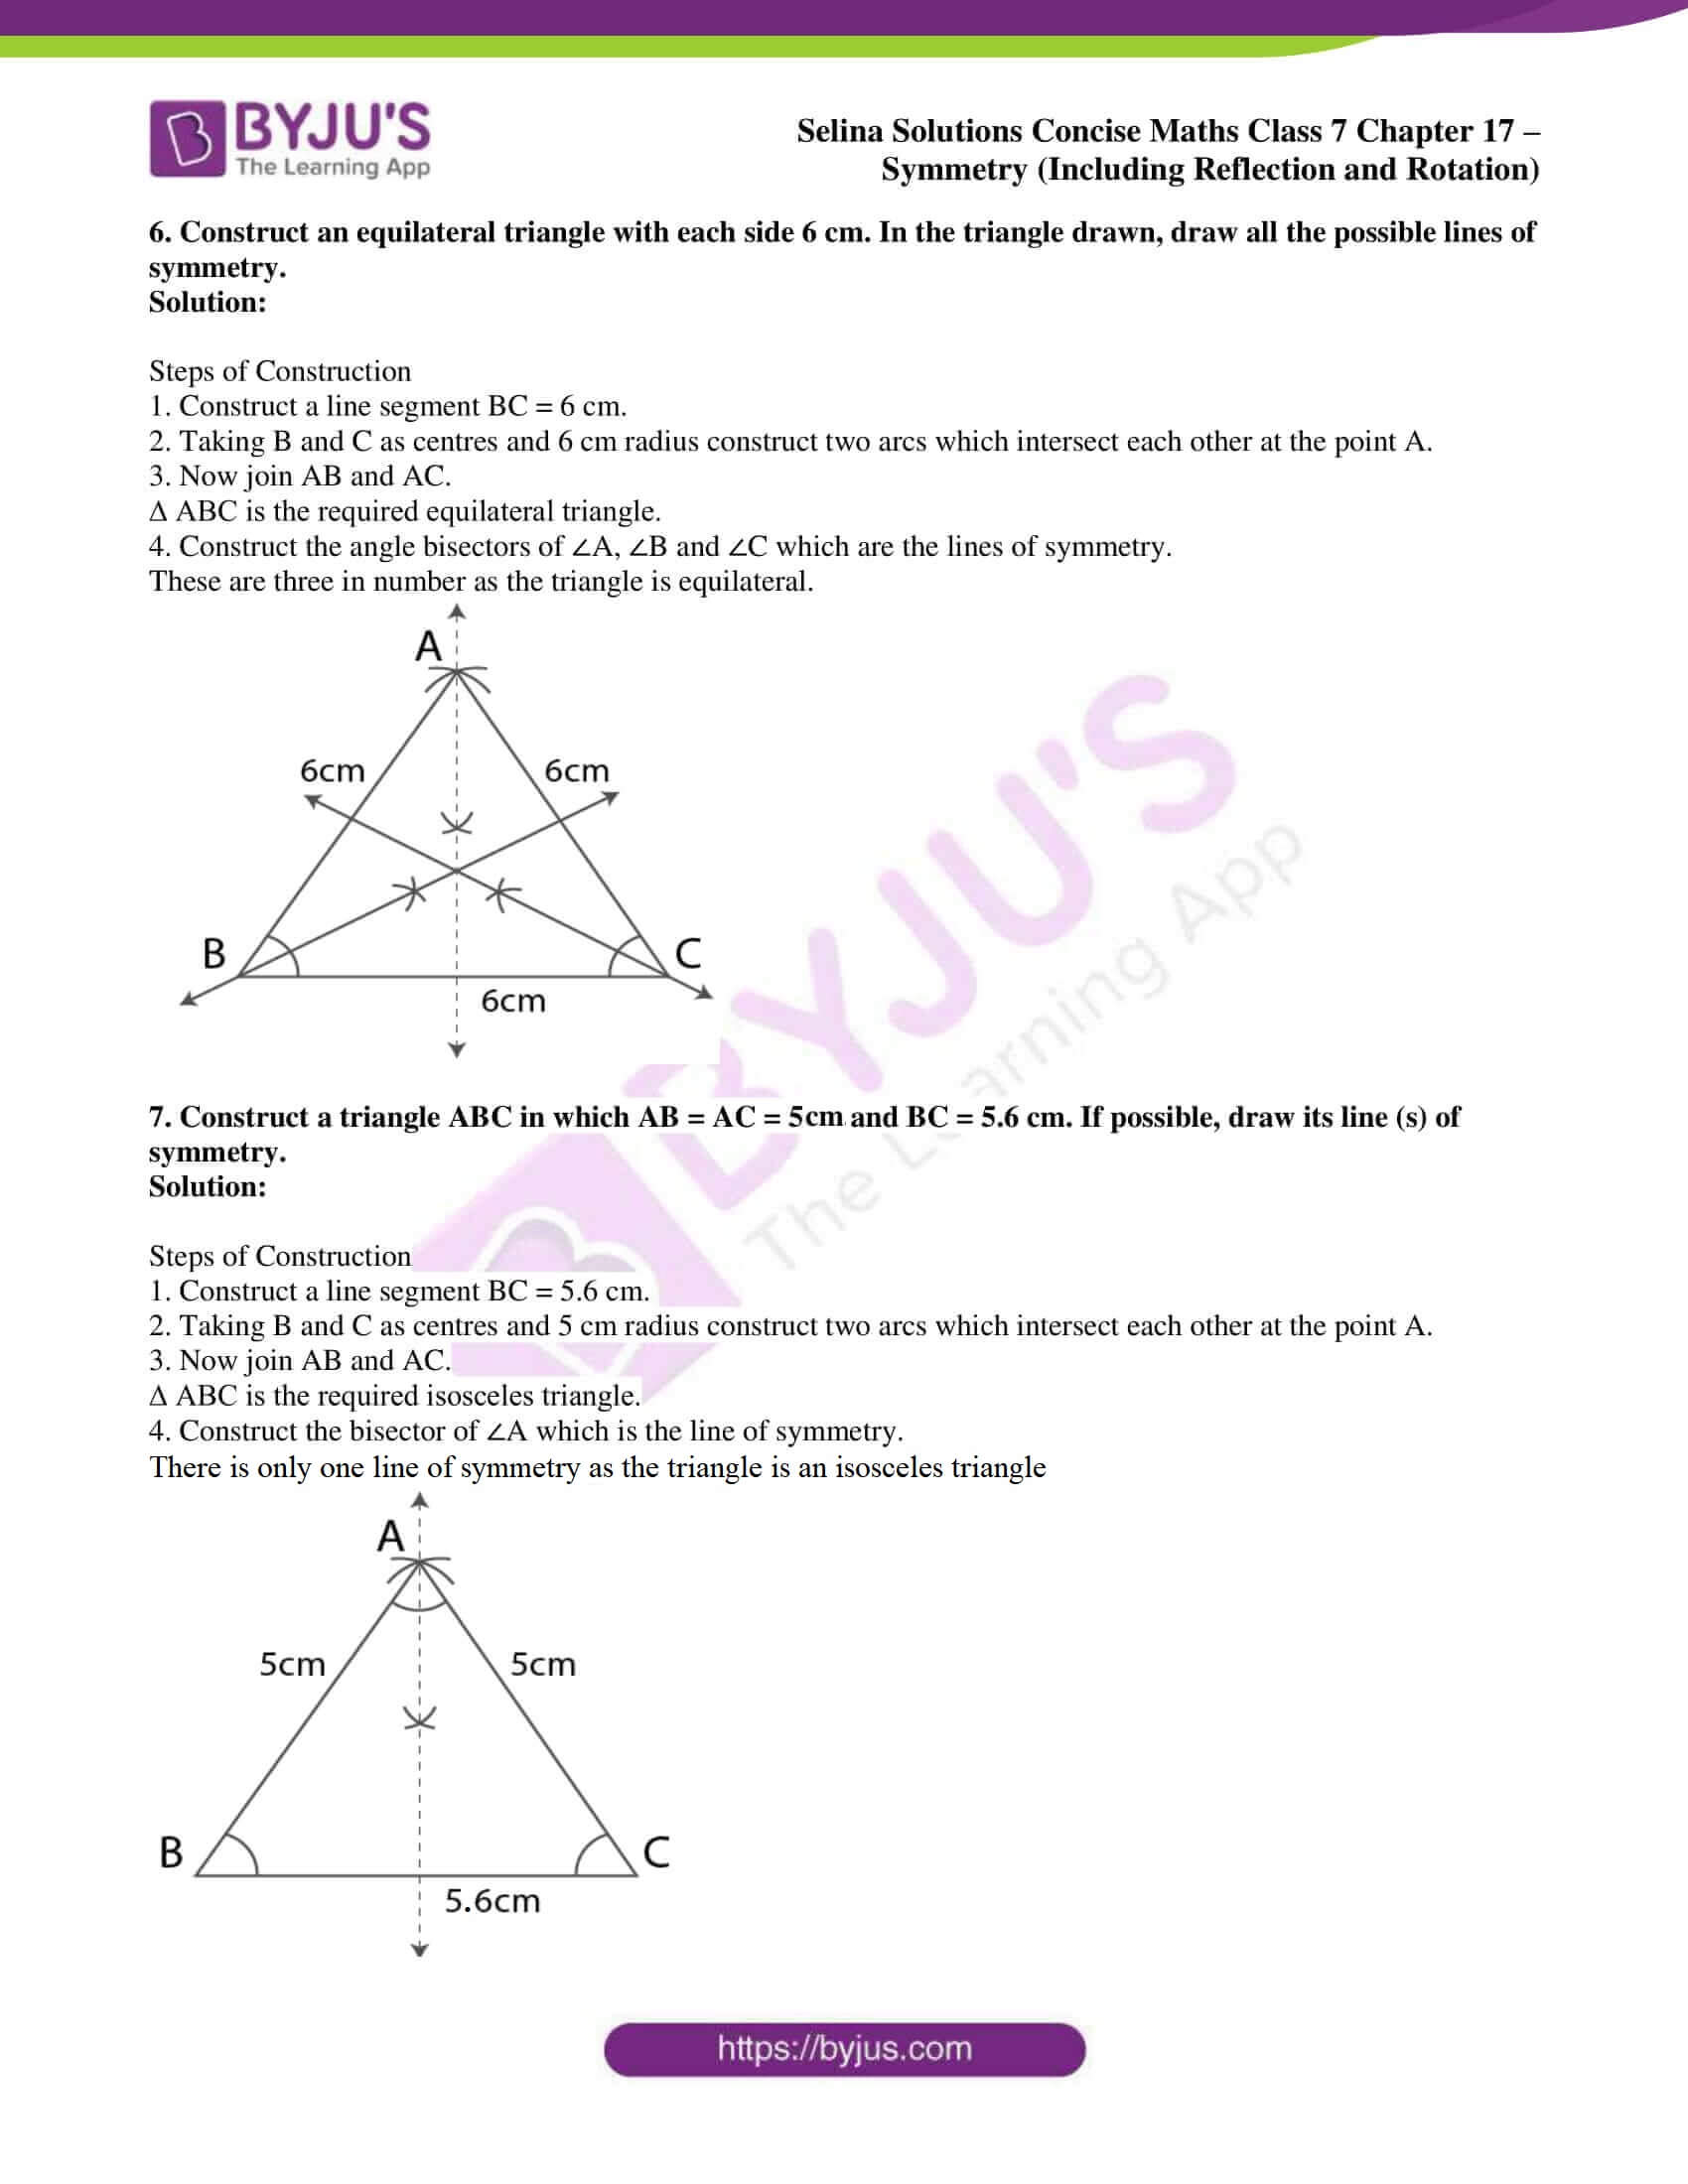 selina sol concise maths class 7 chapter 17 ex a 6